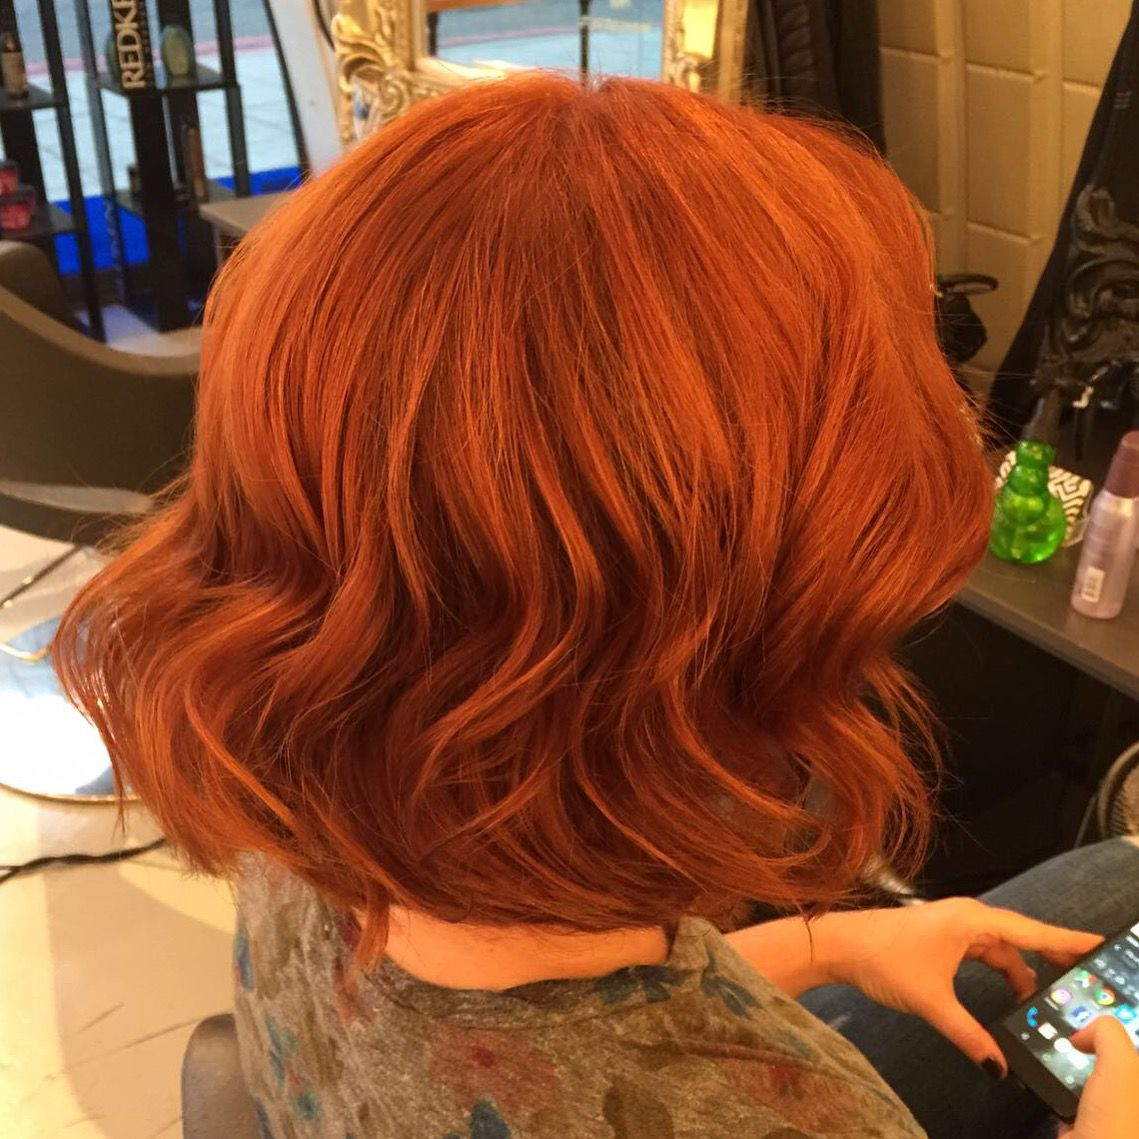 Behind The Chair Hair Color - True colour copper balayage by orlando at clapham copper balayage colour